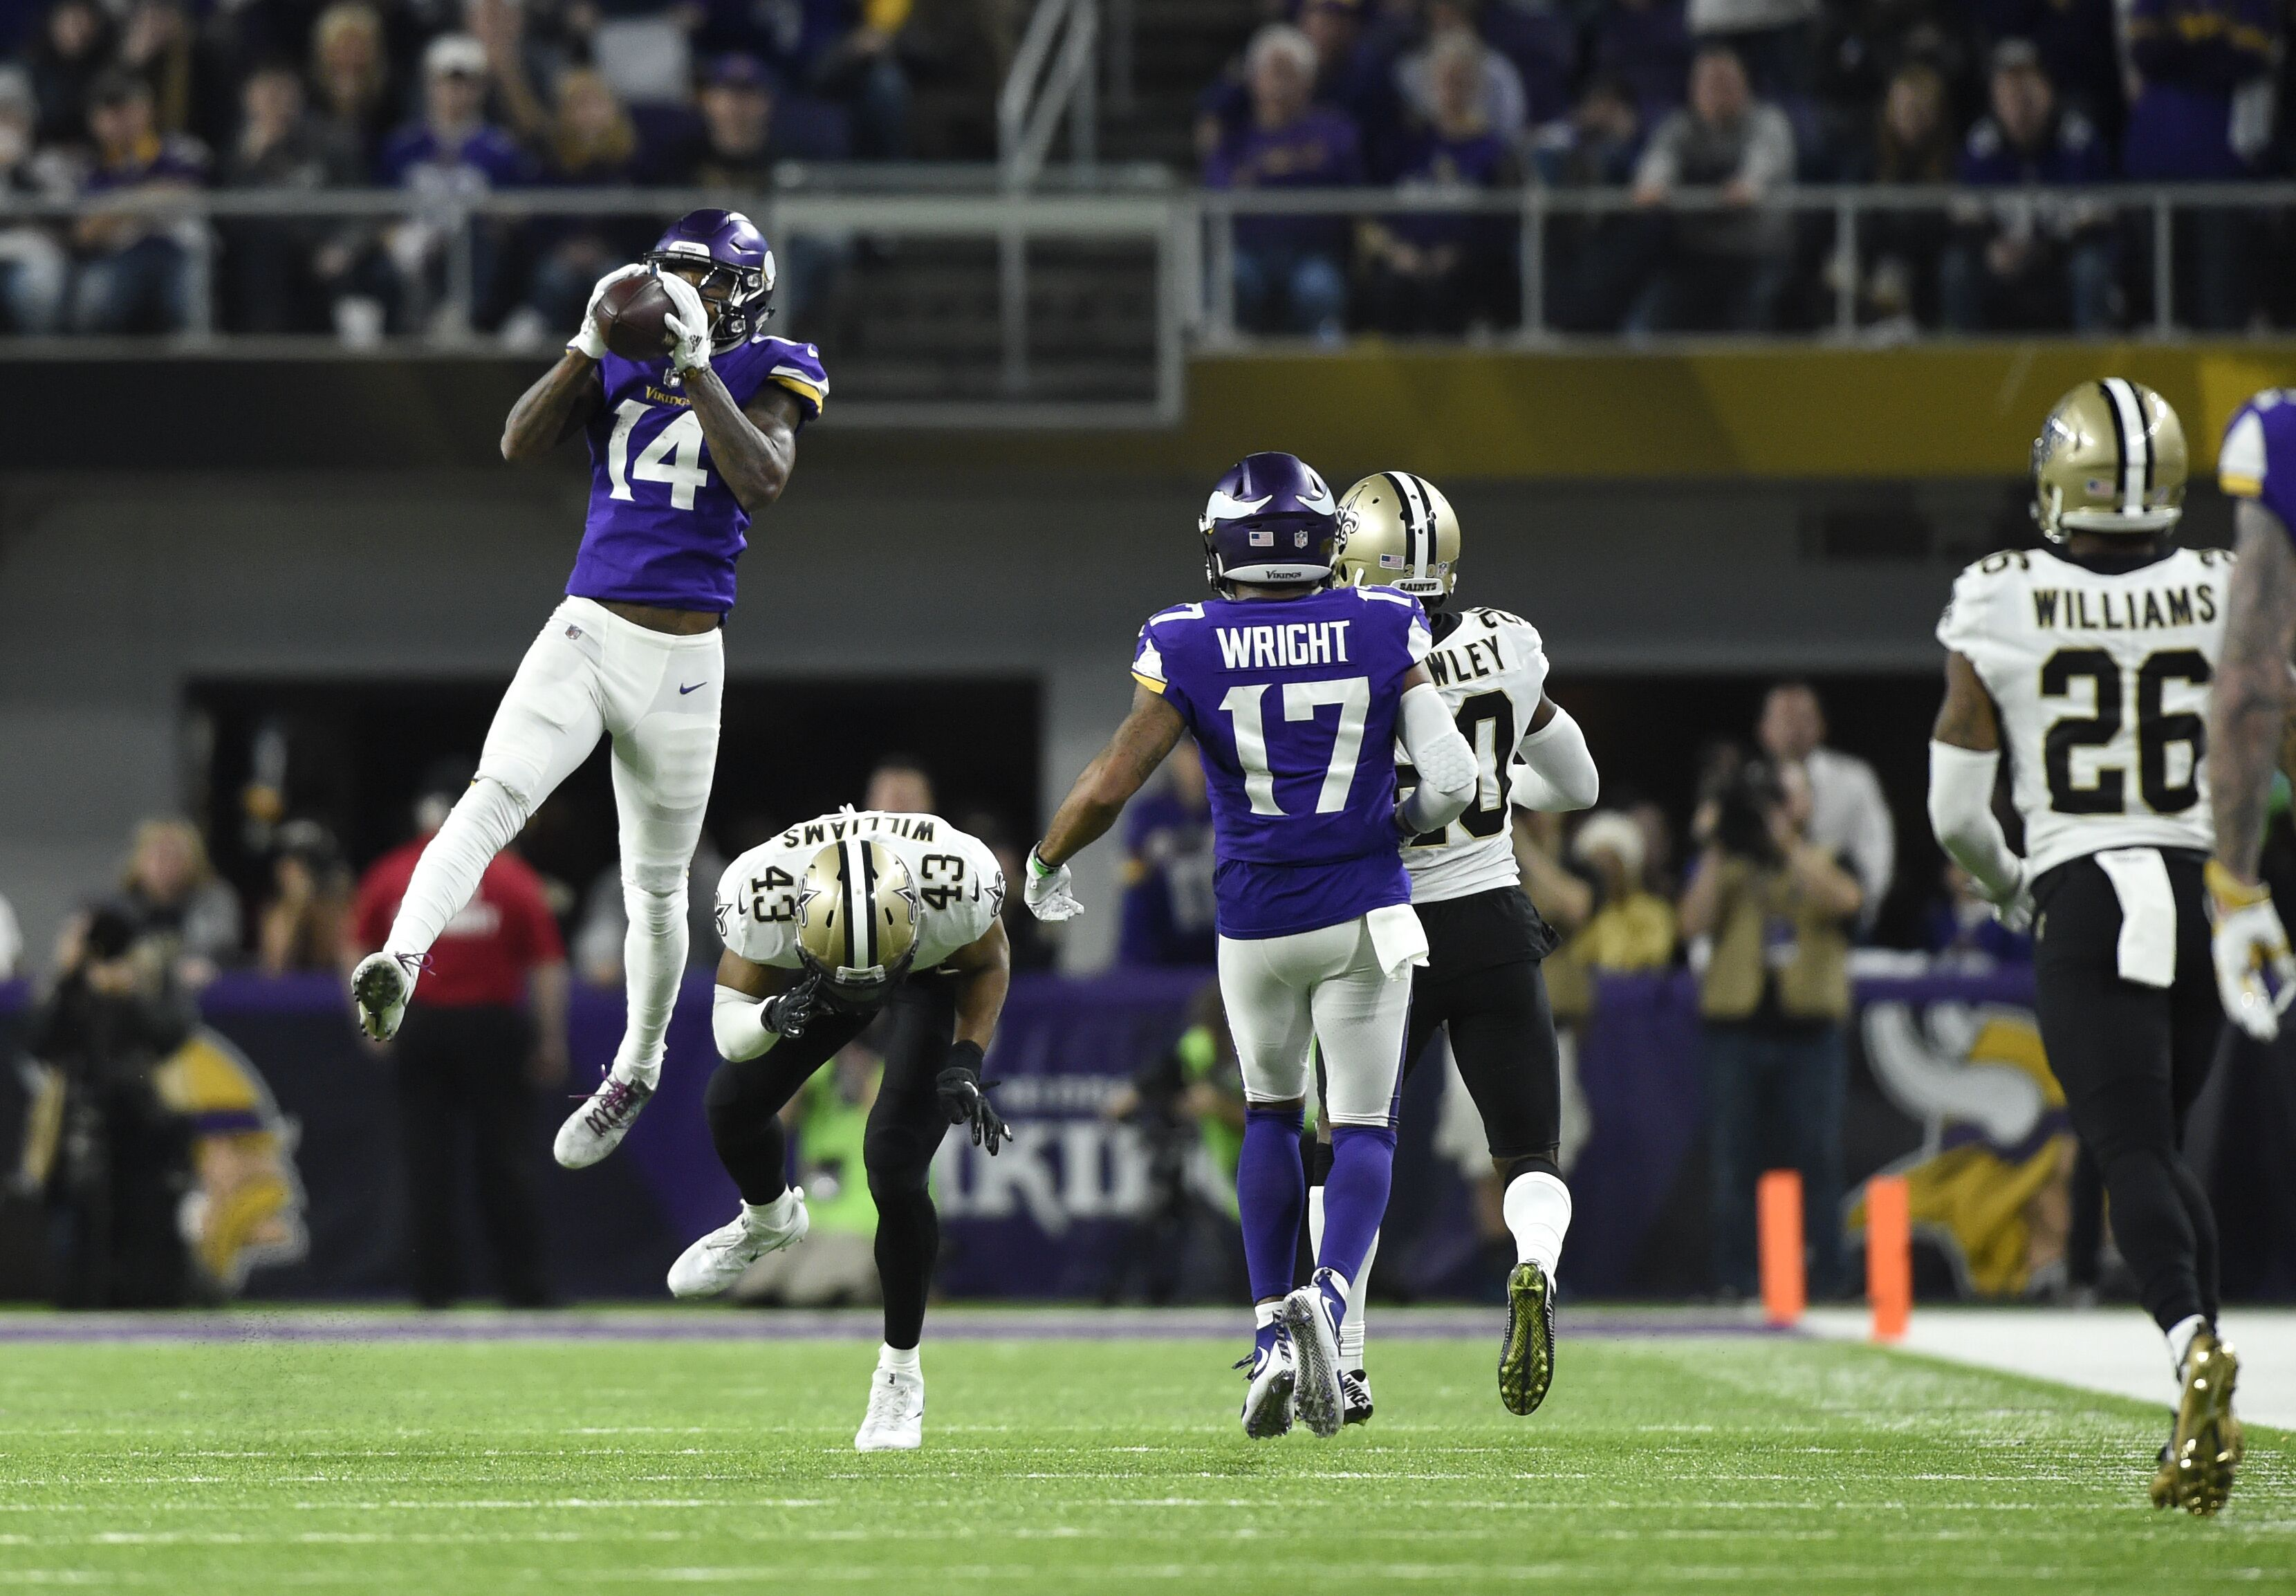 Minnesota Vikings land two ESPYs nominations for Minneapolis Miracle 2adb5d416a